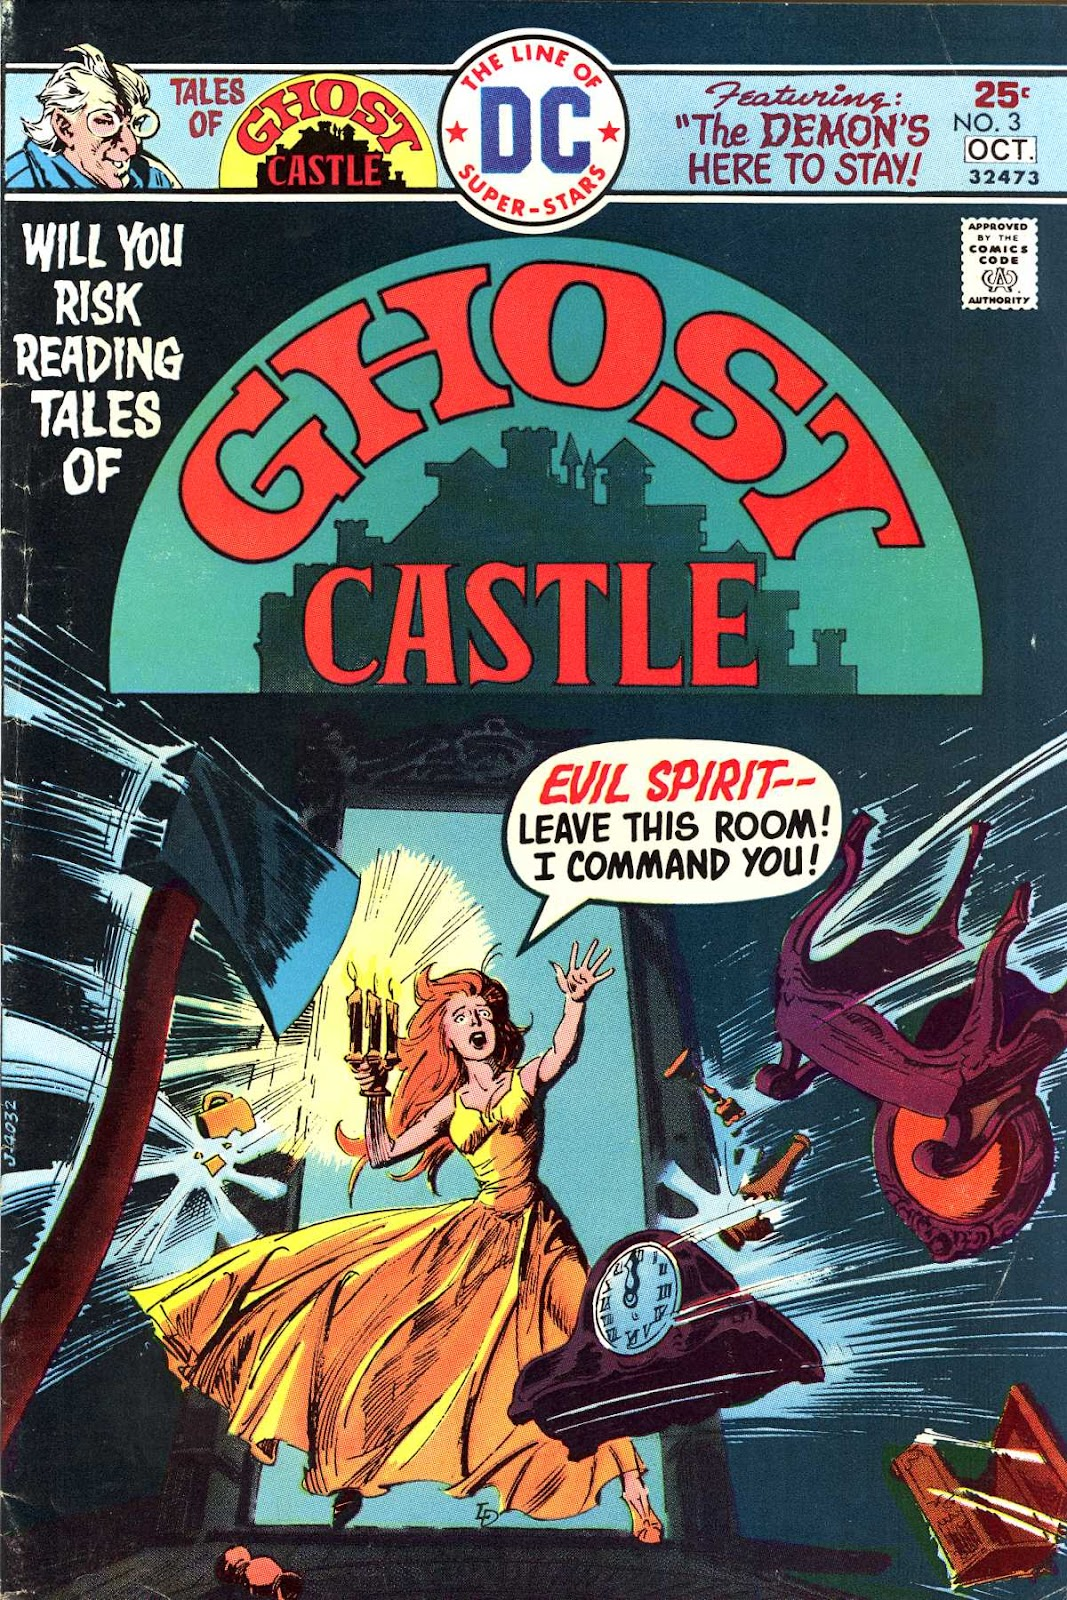 Read online Tales of Ghost Castle comic -  Issue #3 - 1